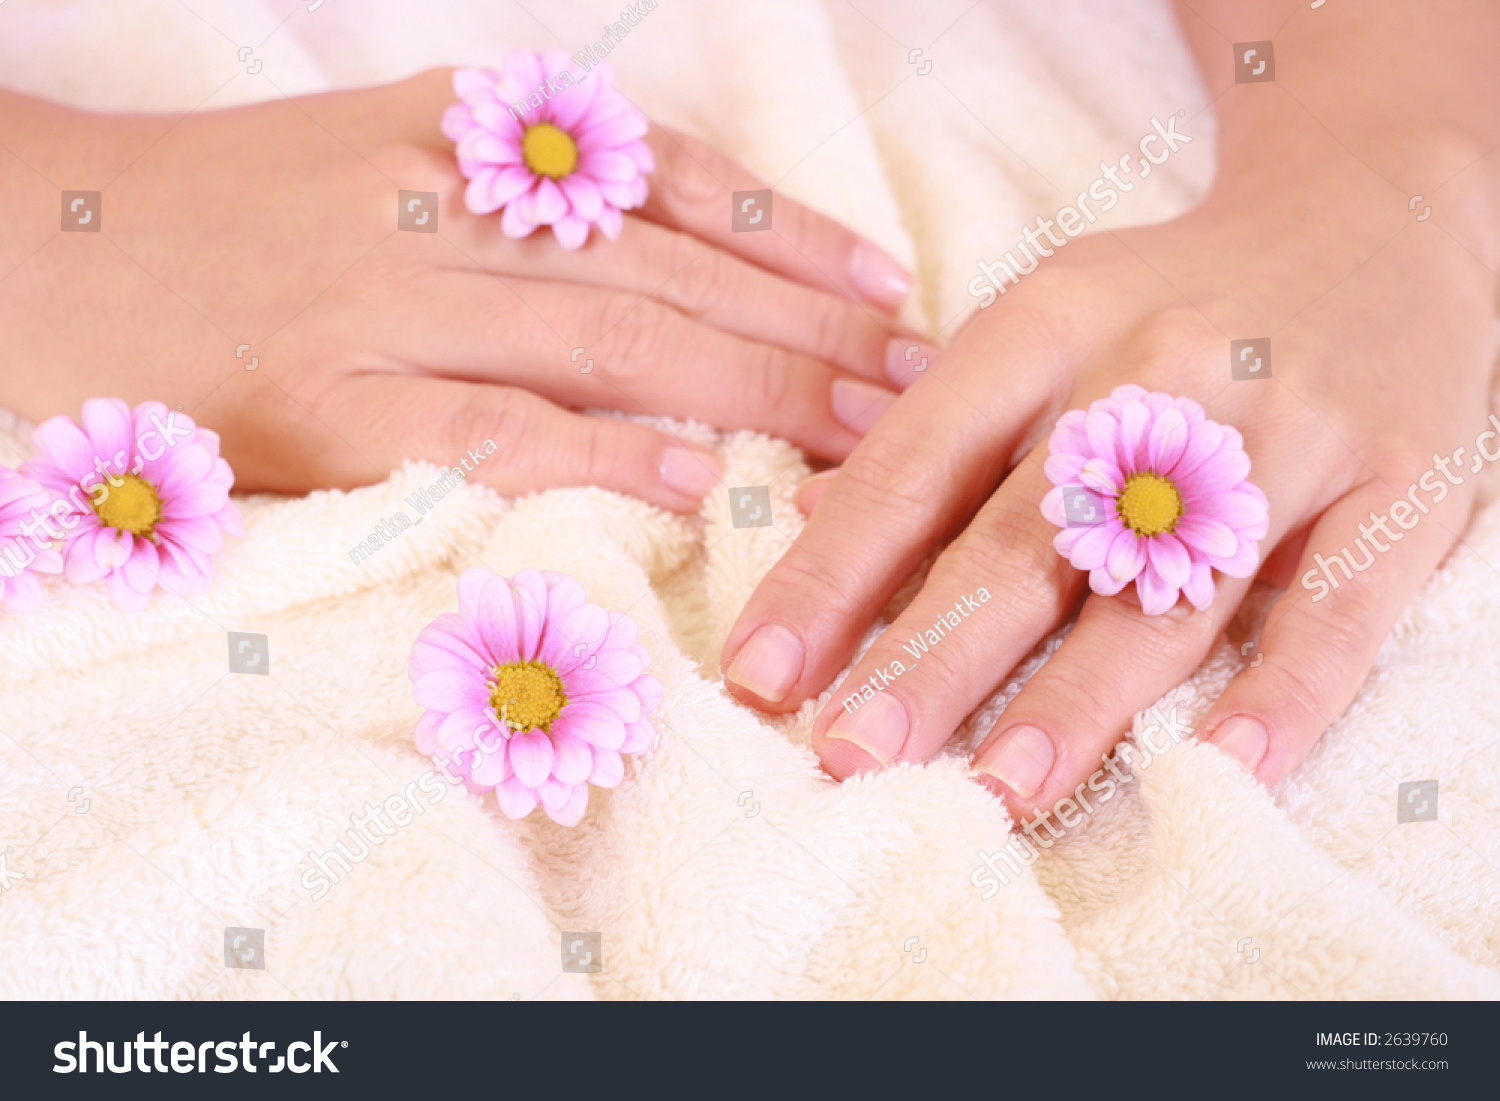 Beautiful Hands Daisy Flowers Hands Care Stock Photo Edit Now